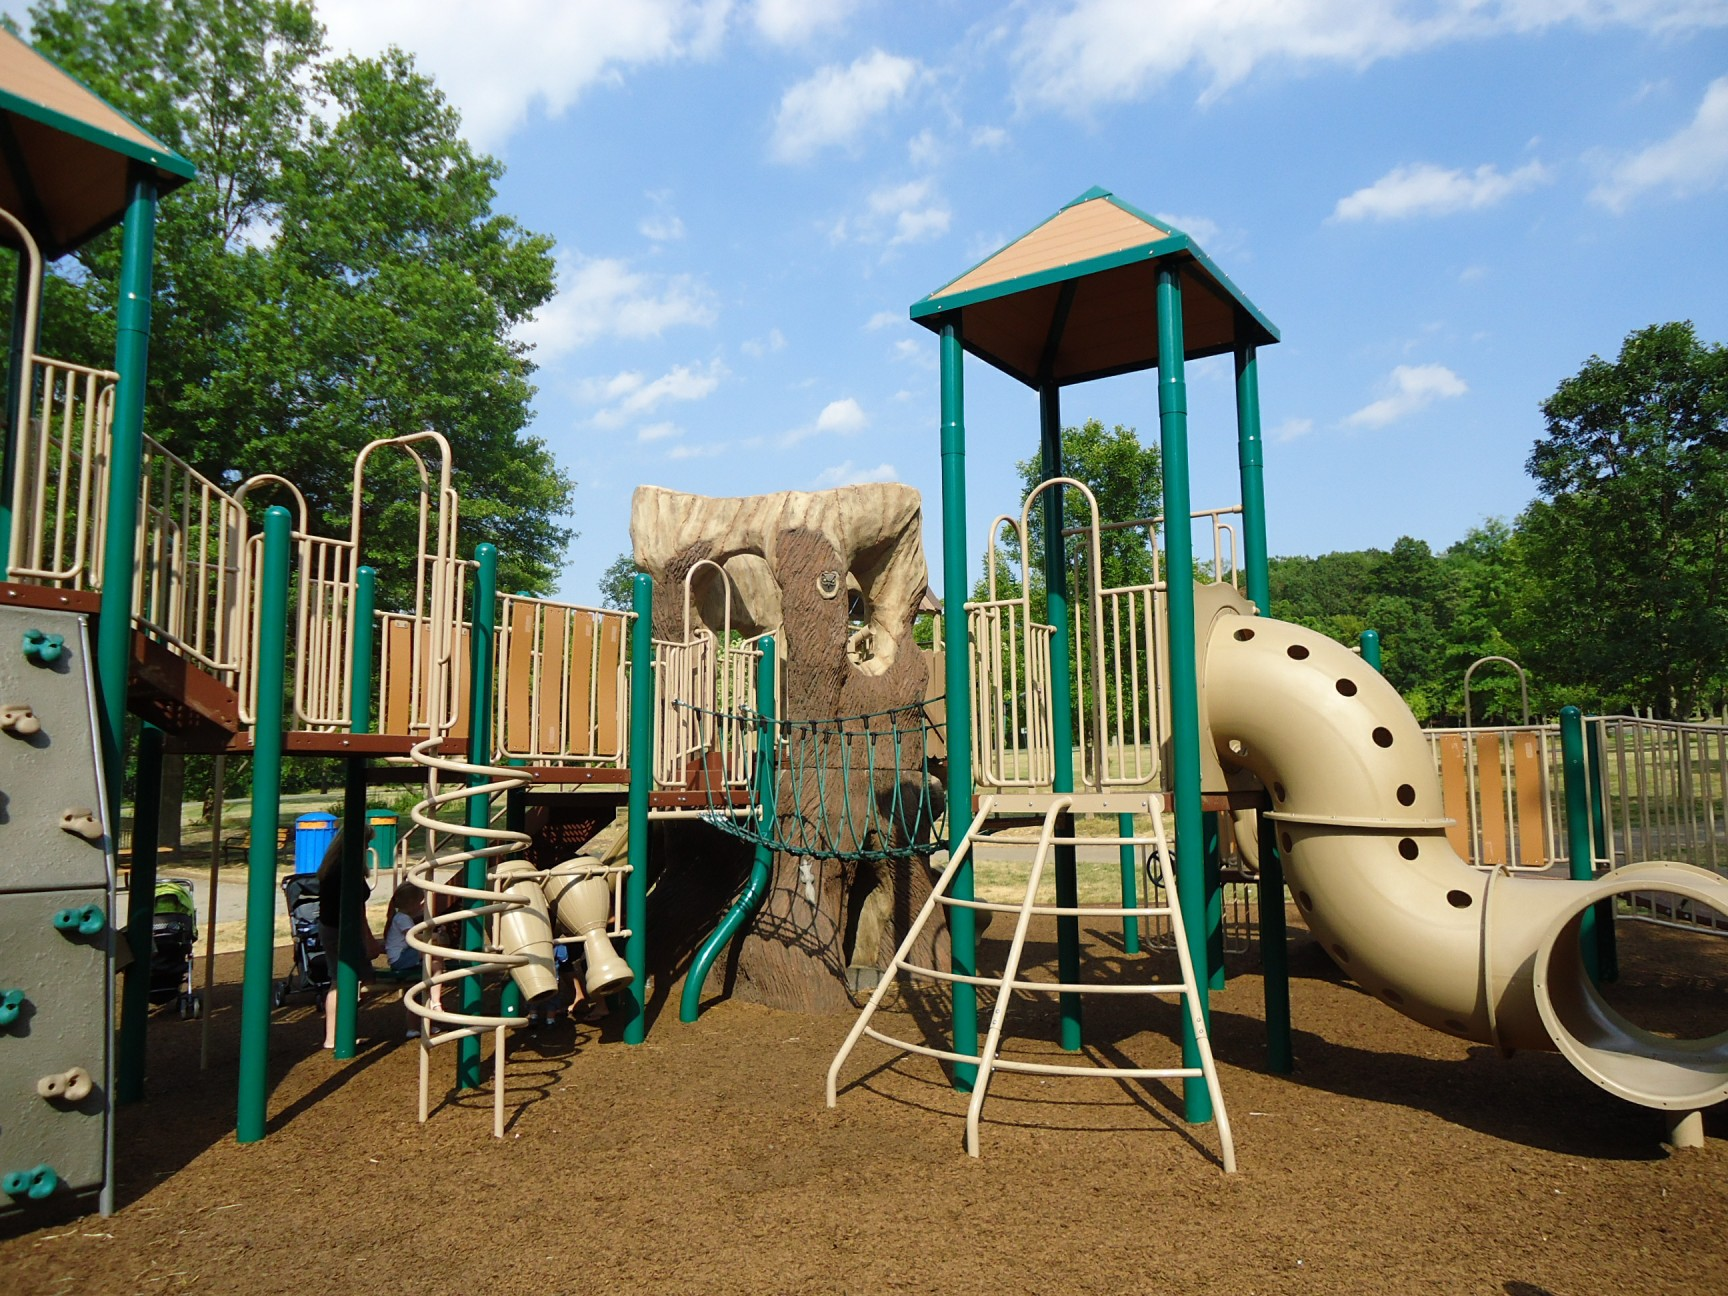 File Childrens Outdoor Play Equipment In Park Jpg